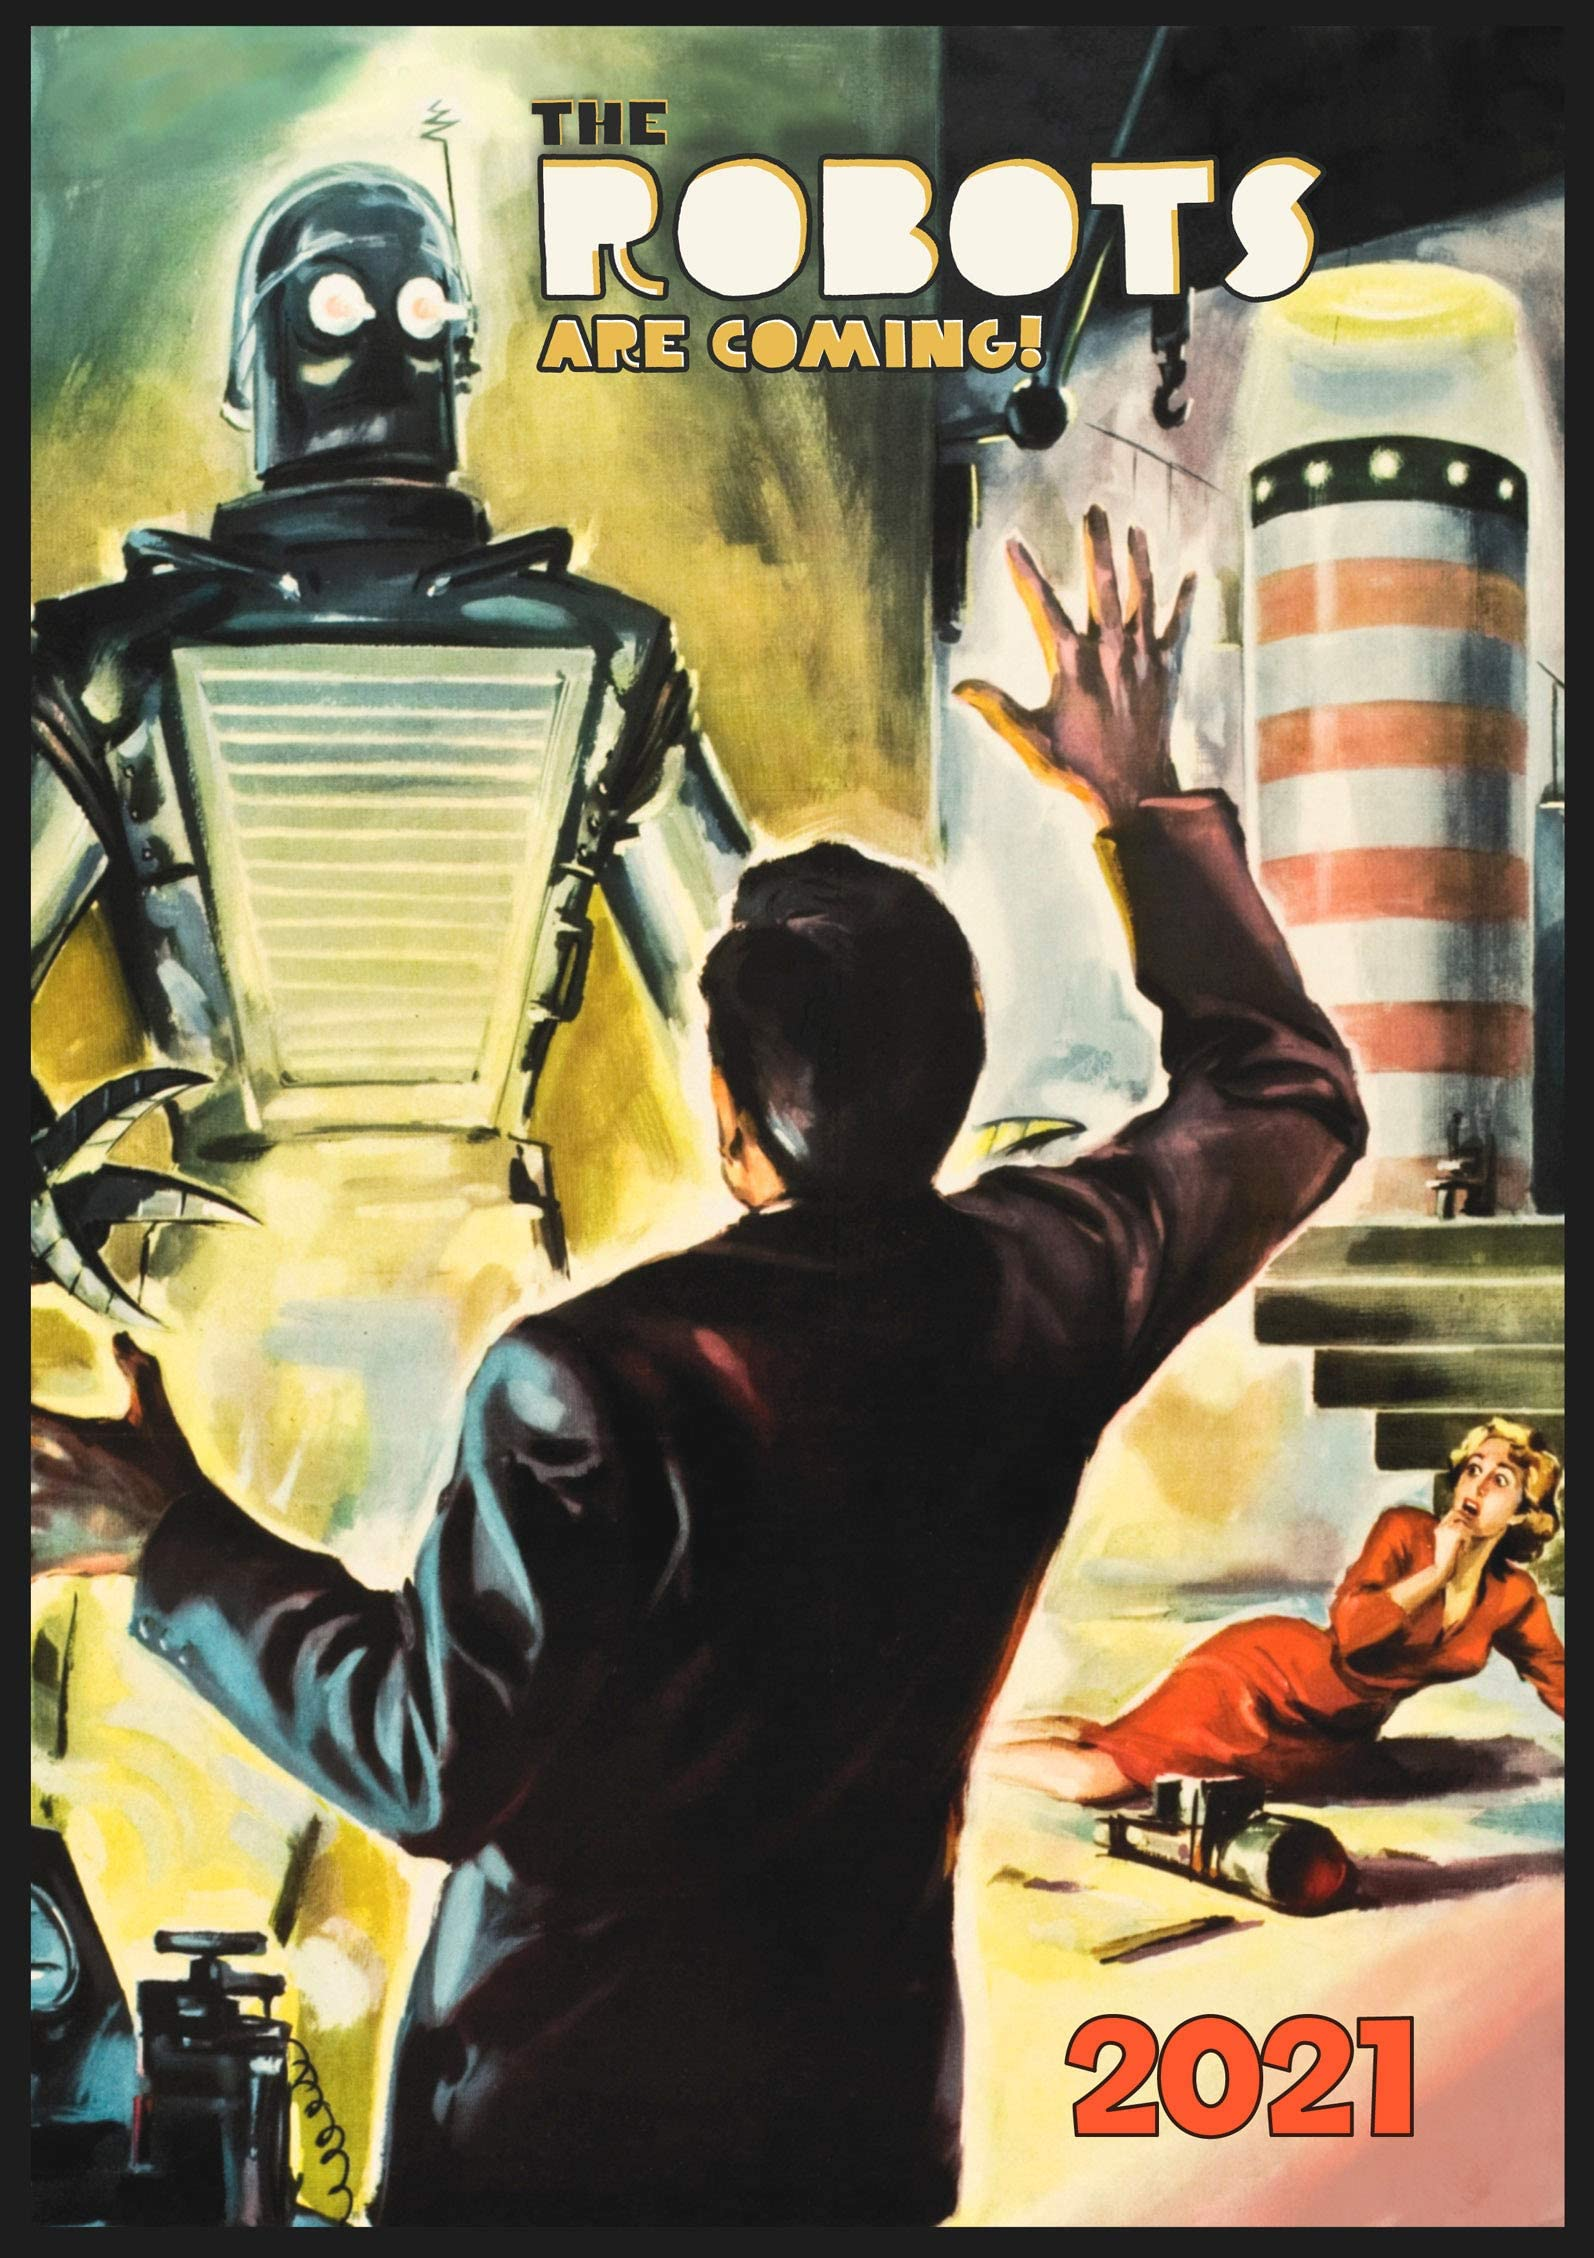 Wall Calendar 2021 12 pages 8x11 Vintage Sci-Fi Book Magazine Illustrations by Ed Valigurksy Reprint M-911